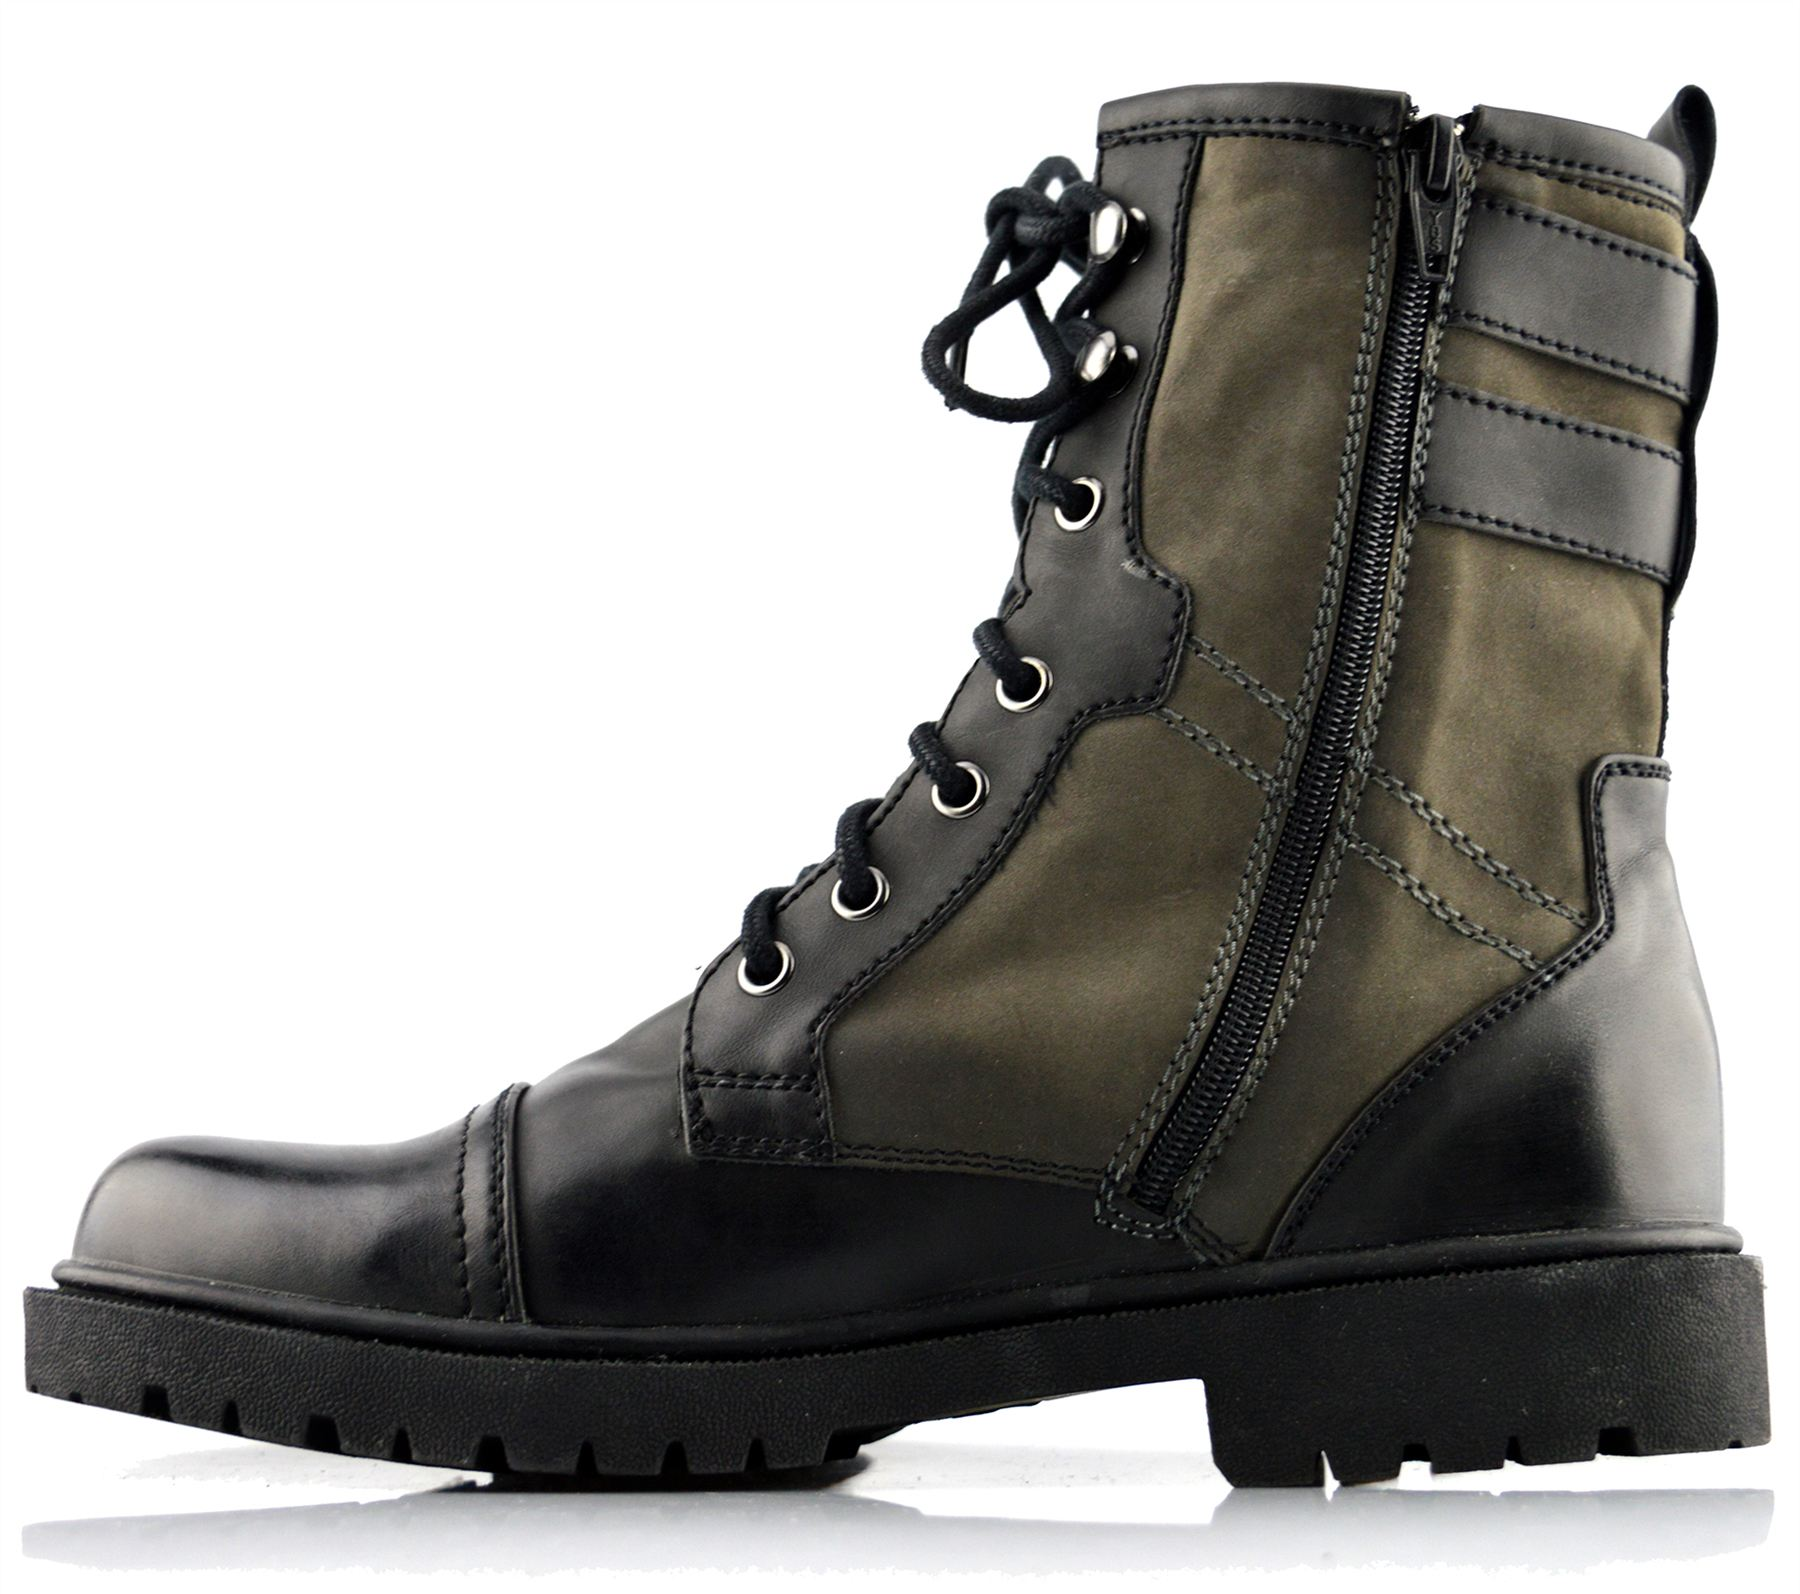 Mens New Military Biker Style Lace Up Zip Ankle High Boots Shoes ...